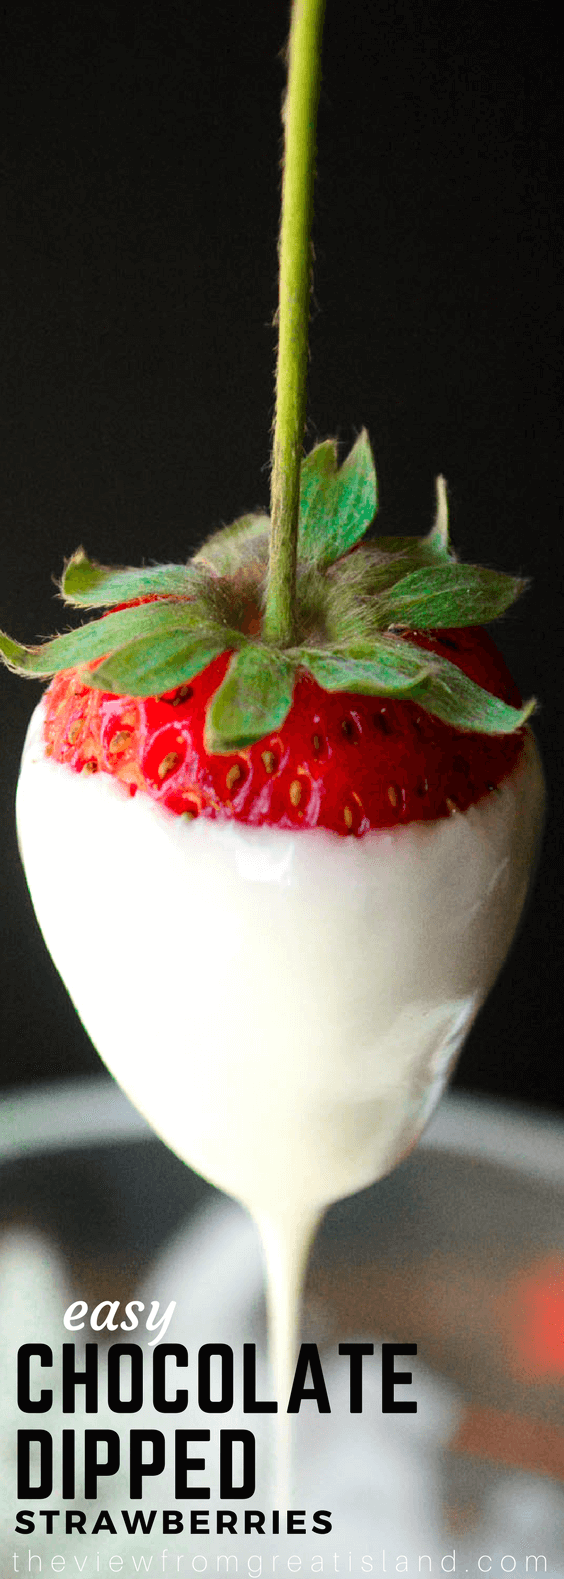 Easy Chocolate Dipped Strawberries ~ this classic spring and summer dessert is healthy and lots of fun to do.  Use long stemmed strawberries and your favorite chocolate for a stunning treat. #strawberries #chocolate #romanticdessert #valentinesdaydessert #mothersday #easter #springdessert #fruit #fruitdessert #glutenfree  #romantic #wedding #weddingshower